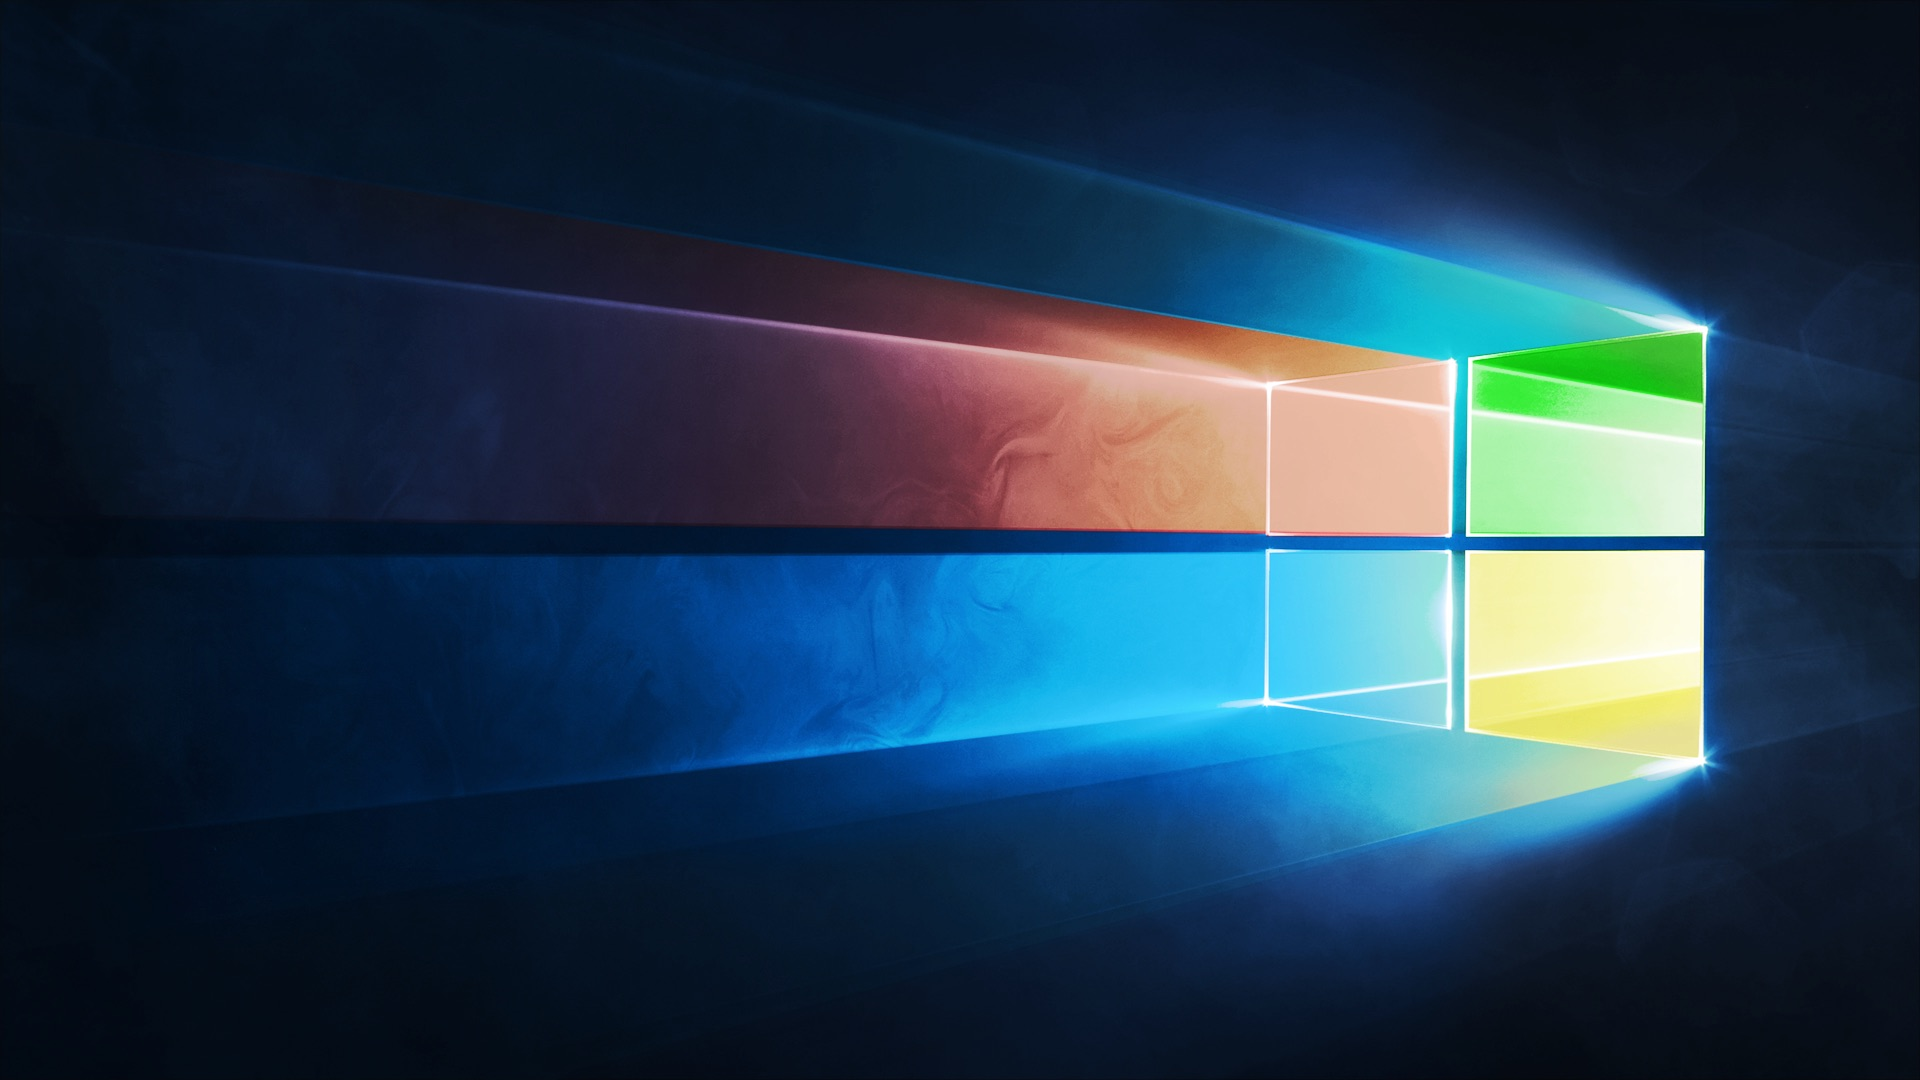 Windows 10 Wallpapers High Quality | Download Free